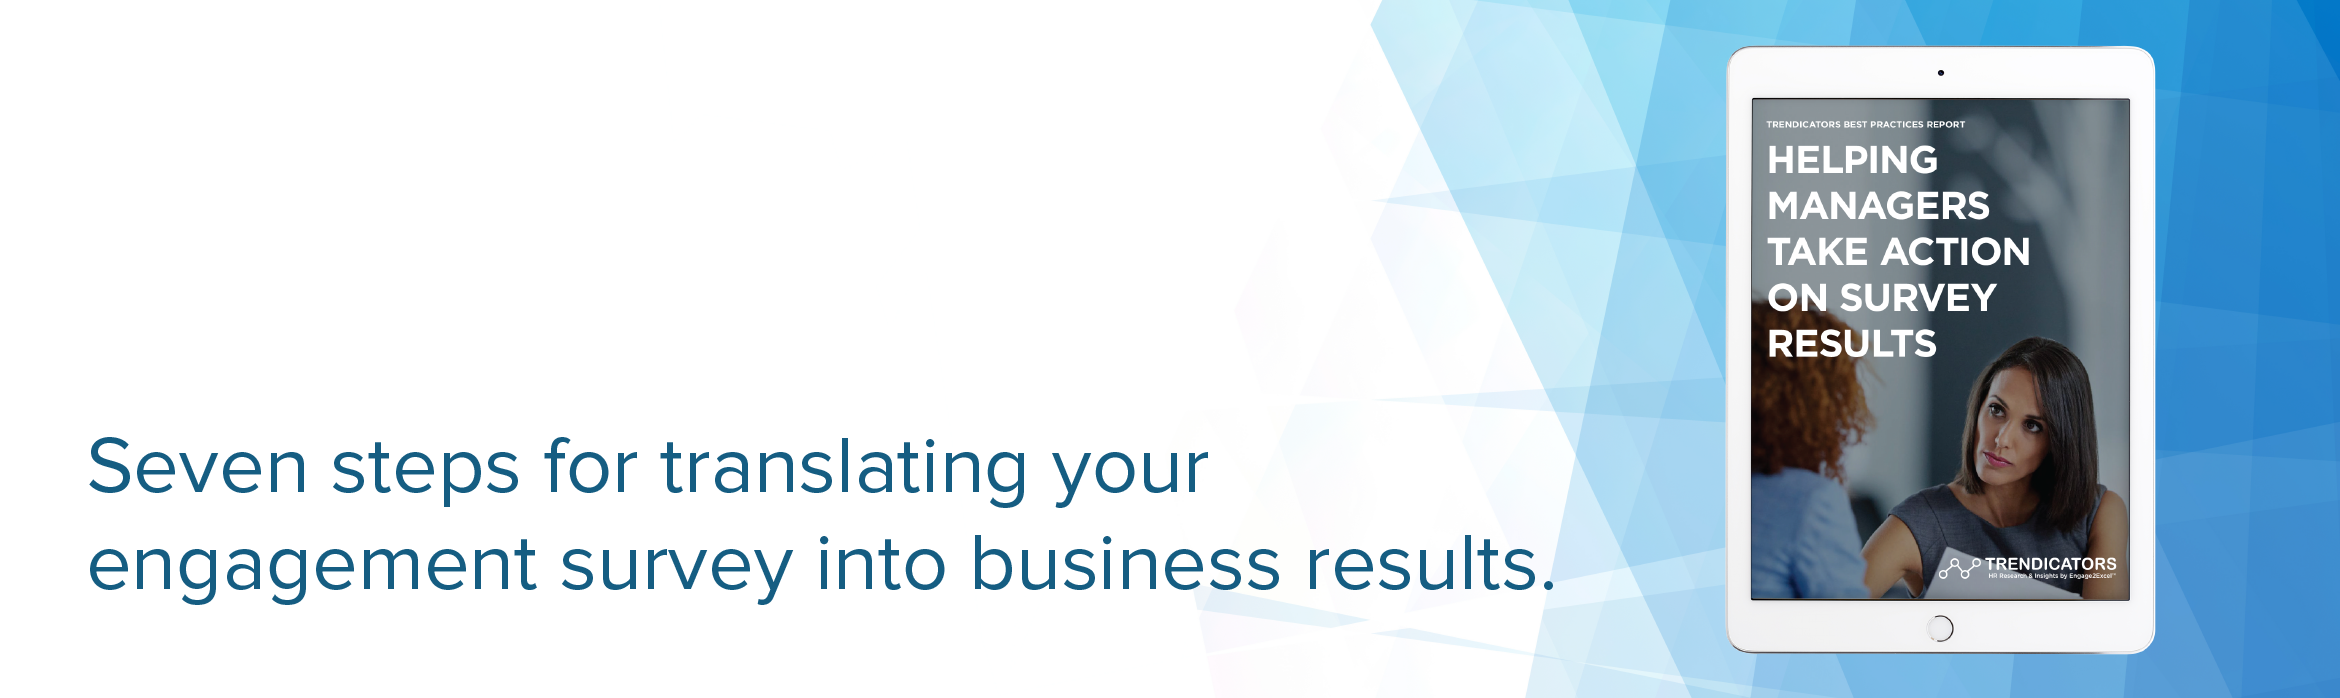 Seven steps for translating your engagement survey into business results